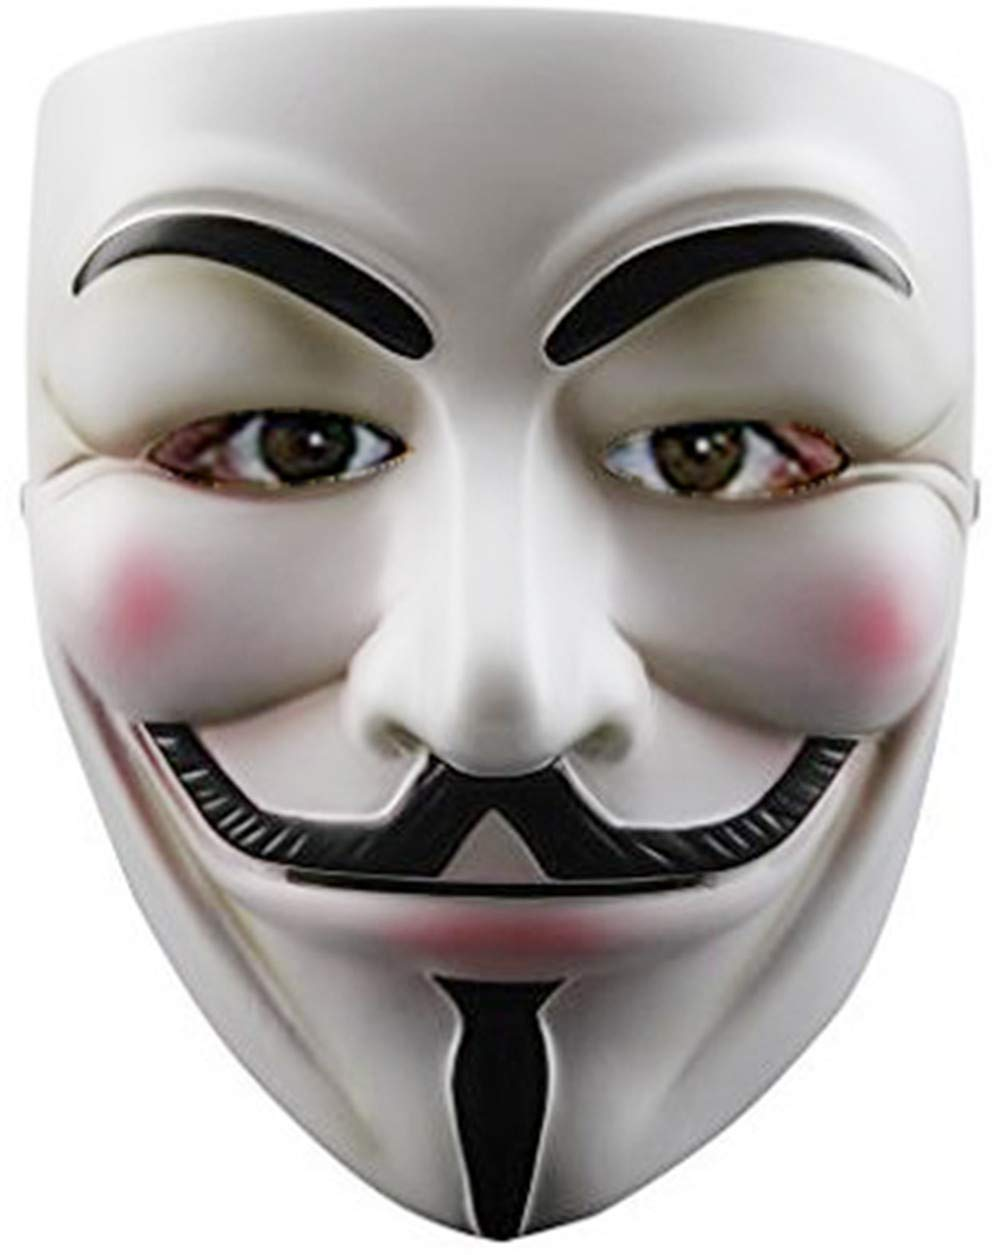 ویکالا · خرید  اصل اورجینال · خرید از آمازون · ZLLJH Guy Fawkes Halloween Costume V for Vendetta Mask Anonymous Fancy Cosplay wekala · ویکالا